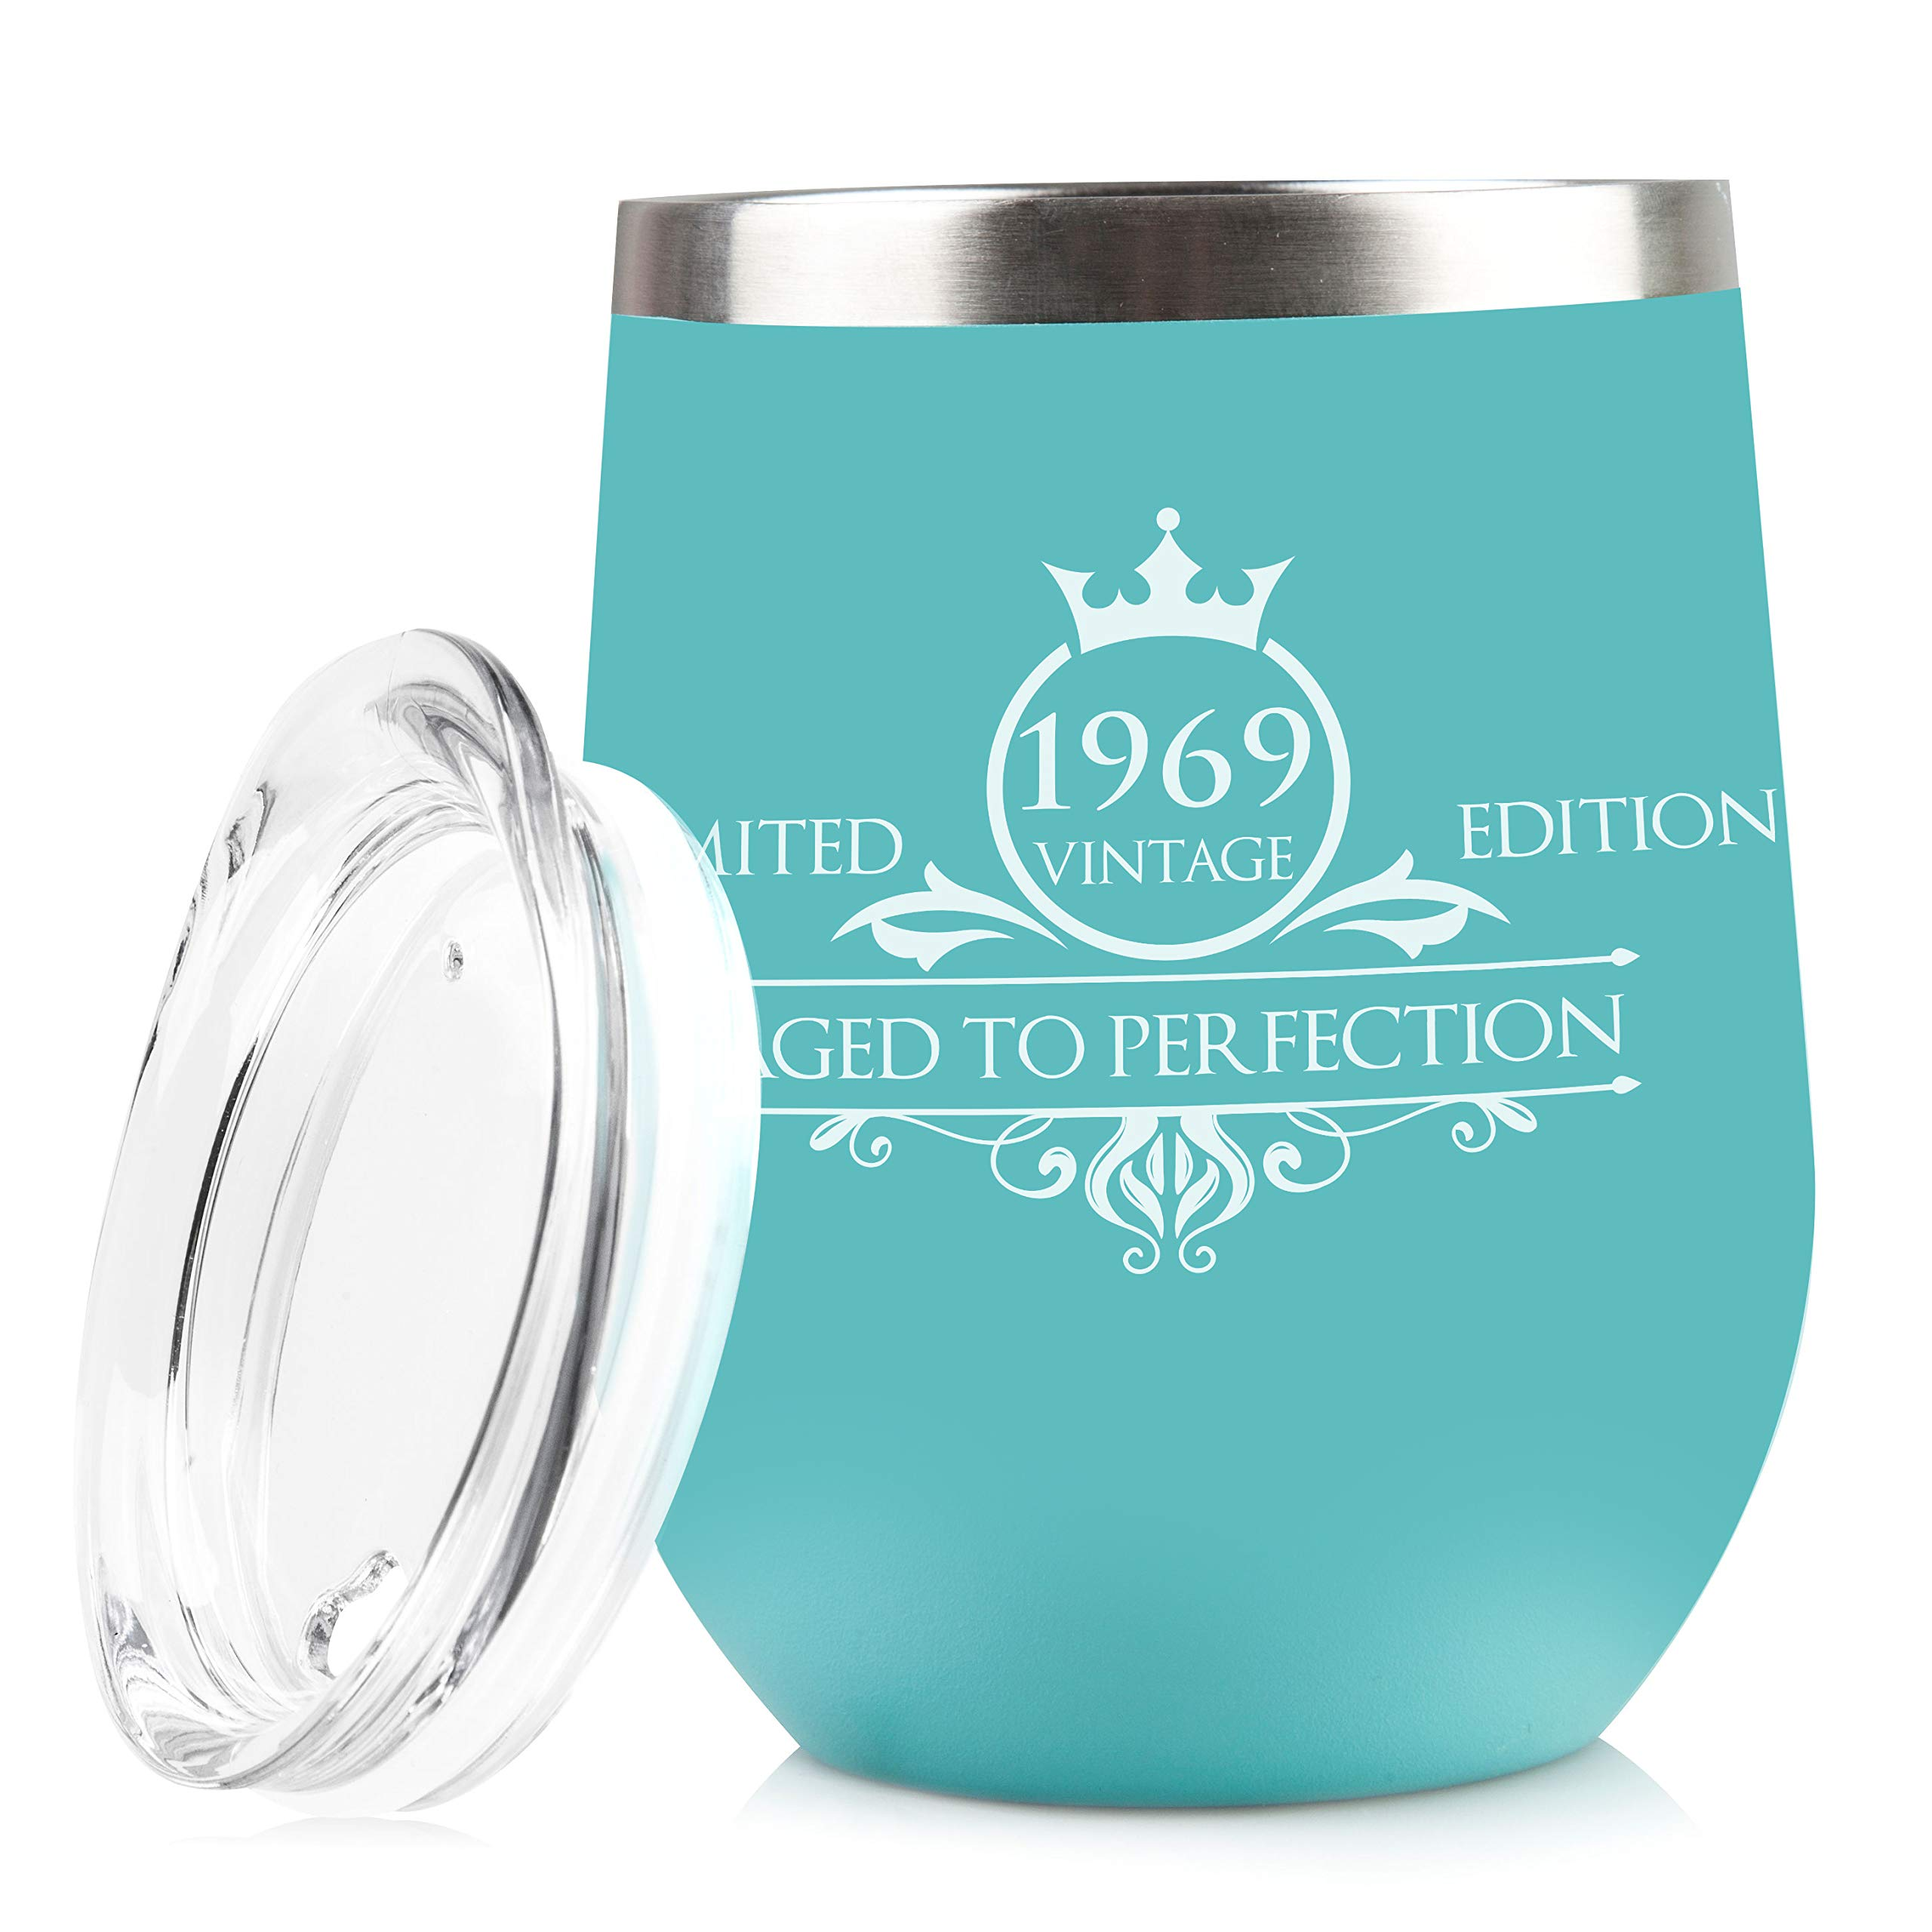 1969 50th Birthday Gifts for Women Men Tumbler | Vintage Anniversary Gift Ideas for Mom Dad Husband Wife | 50 Year Old Party Decorations Supplies for Him Her | 12 oz Stainless Steel Insulated Cups by Gelid (Image #1)